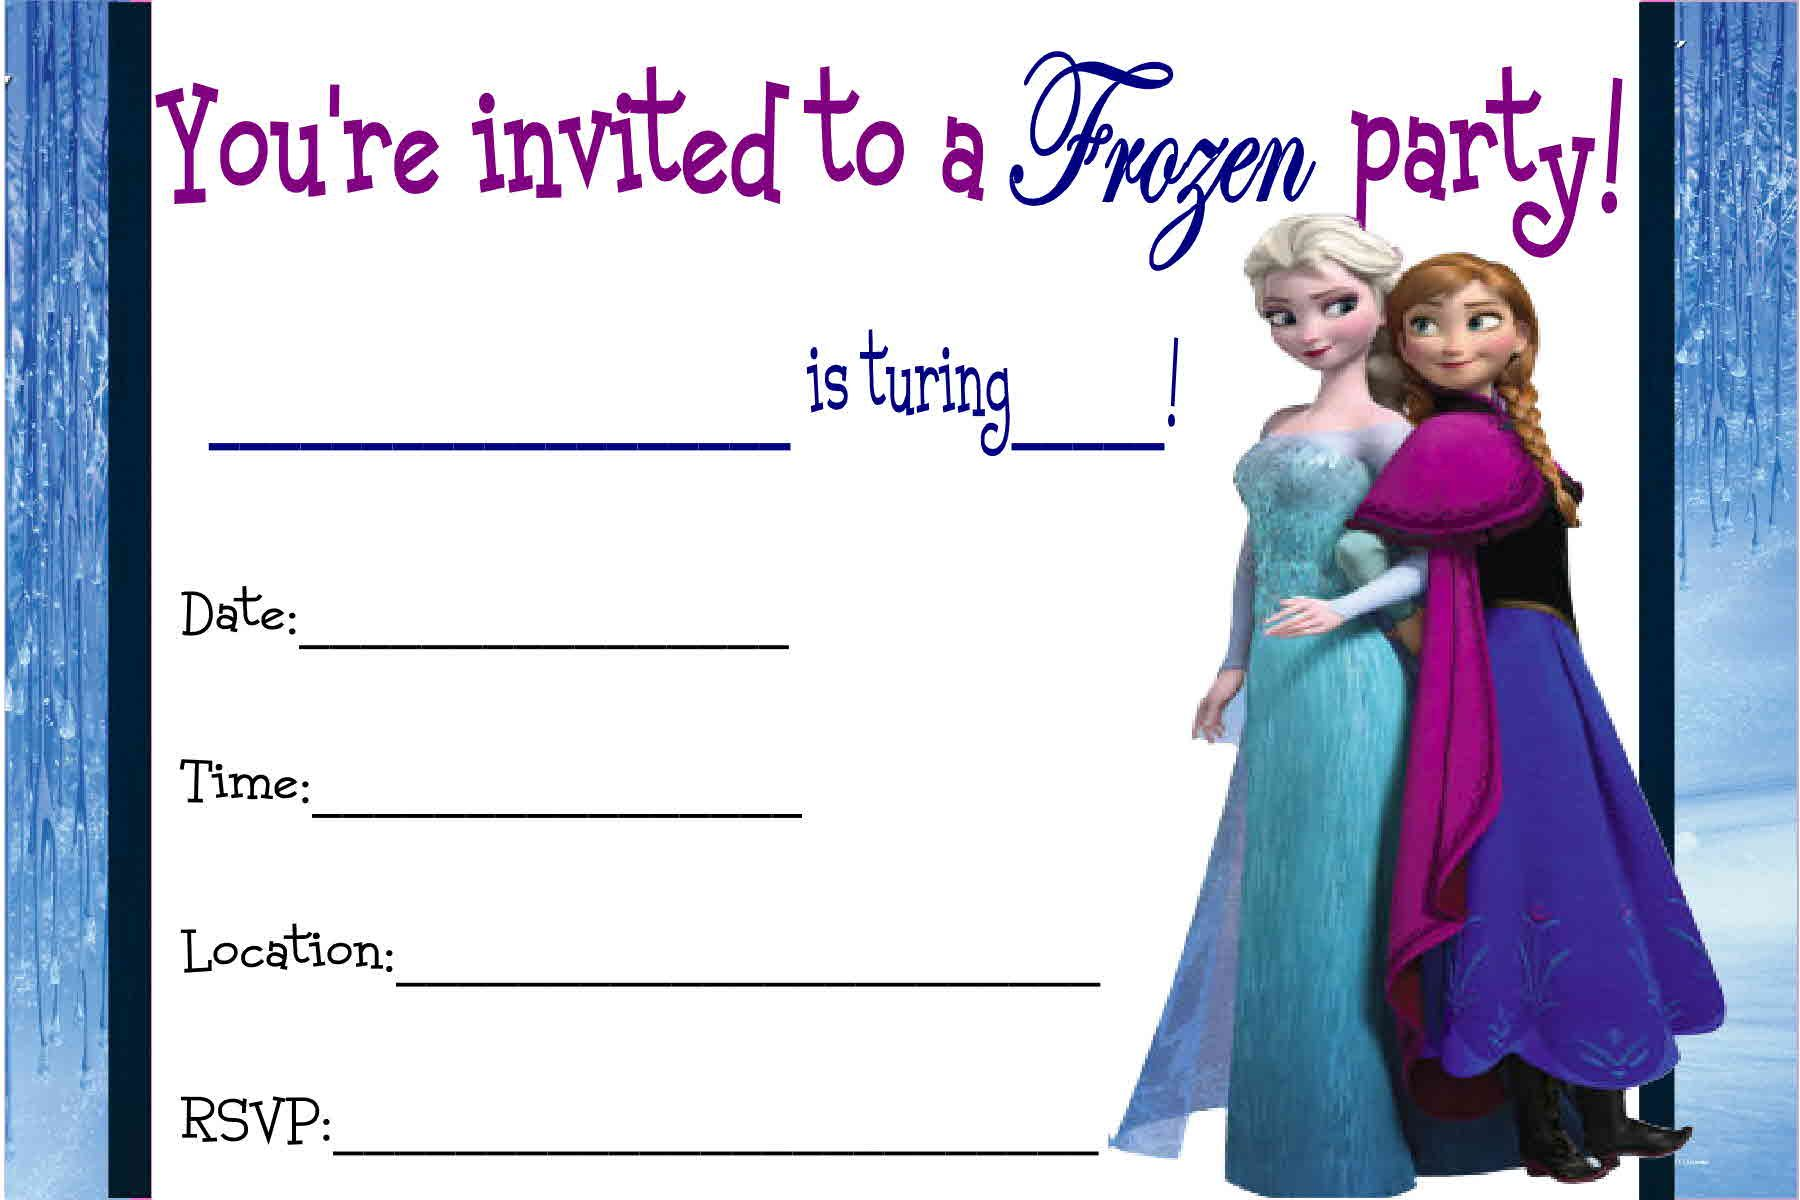 photograph about Free Printable Frozen Invites named No cost Printable Disney Frozen Invites No cost Printable